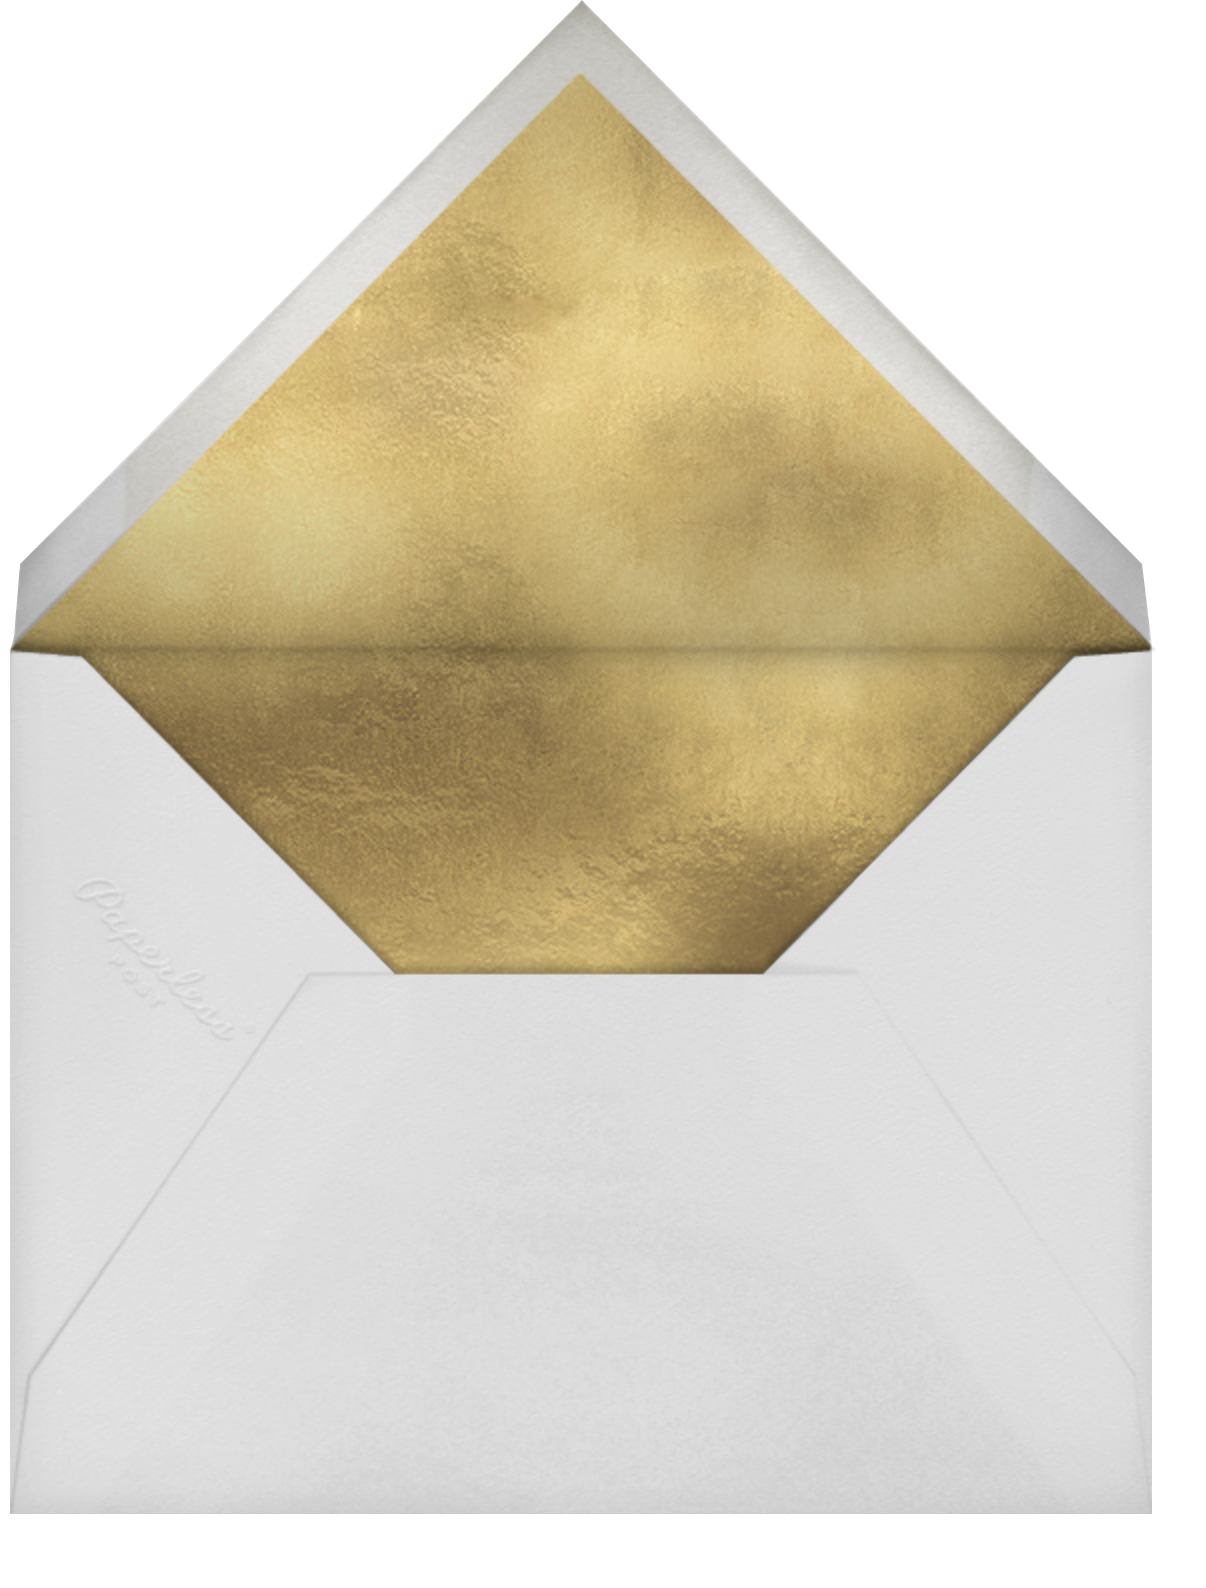 Laguna - Jonathan Adler - Professional events - envelope back